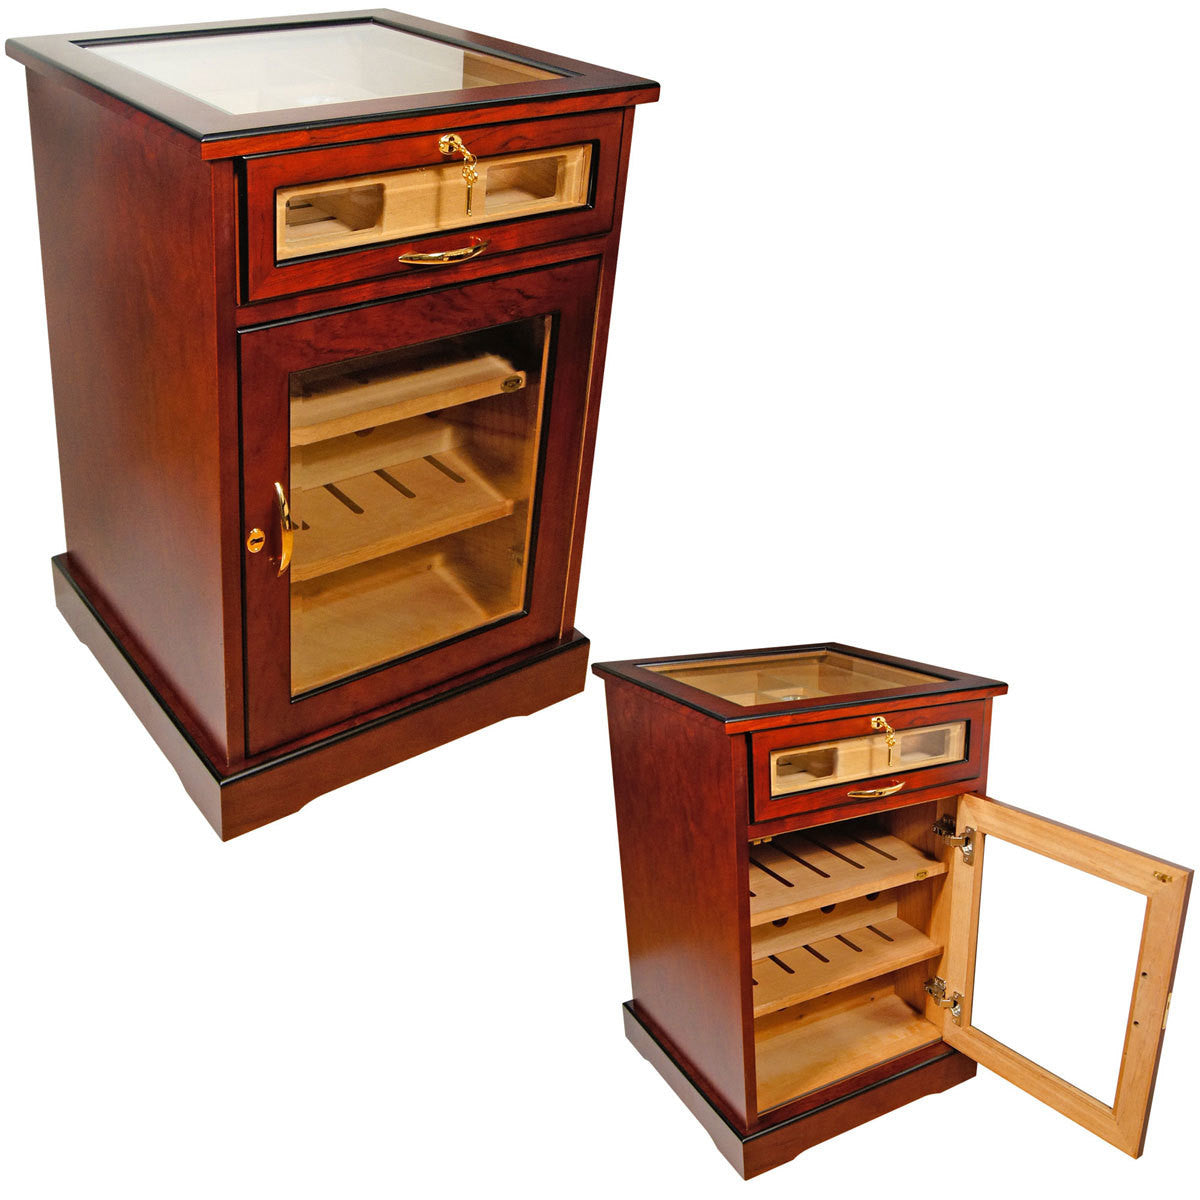 Wine and Cigars Cabinet Humidor End Table Humidor - Free Shipping - Humidors Wholesaler